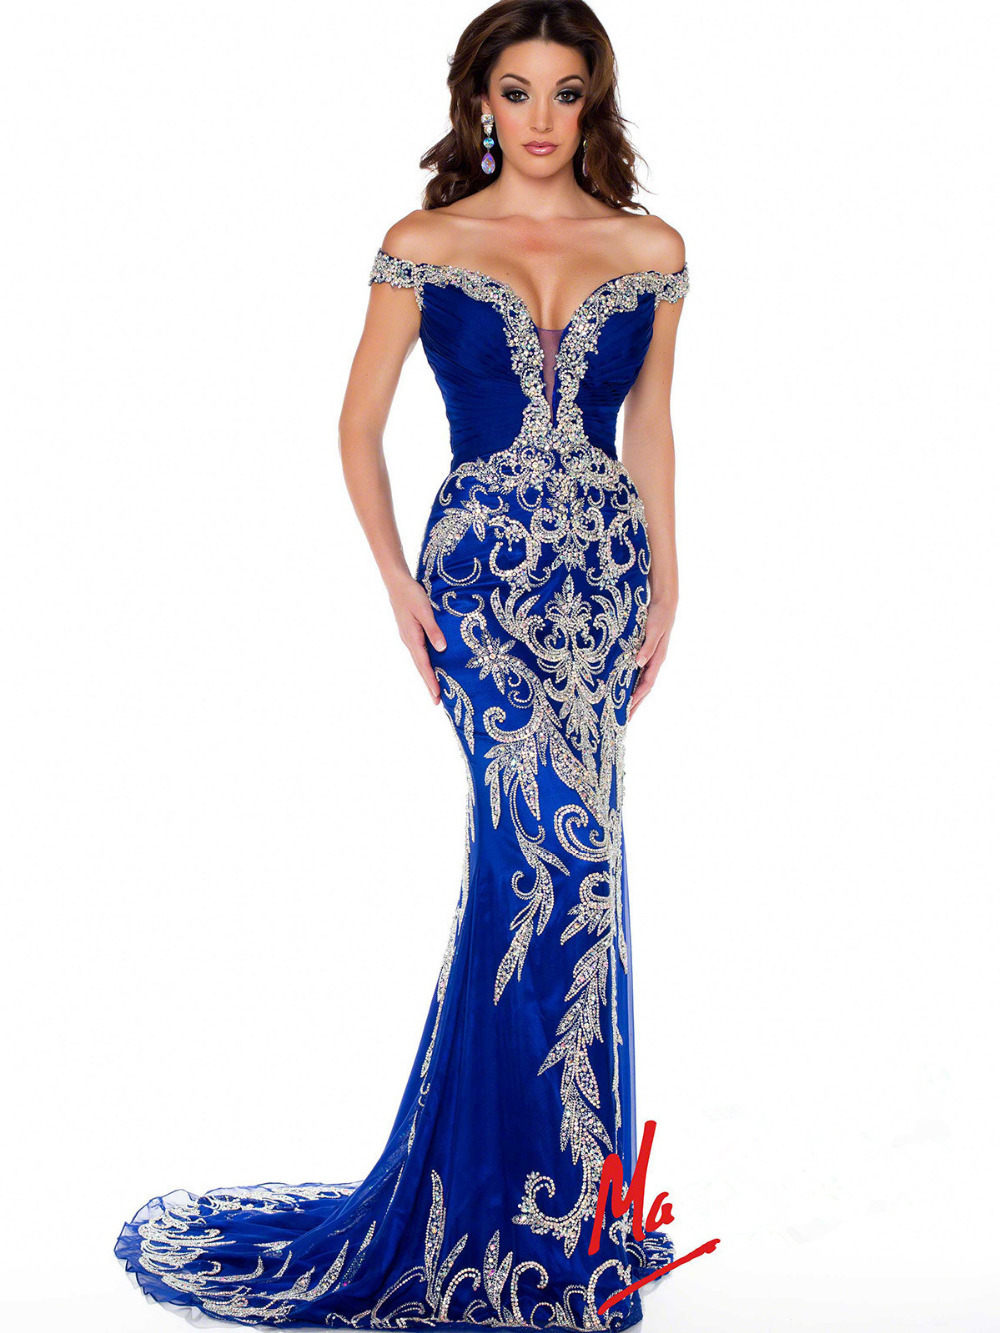 Aliexpress.com : Buy Customized Royal Blue Chiffon With Crystals Beaded Cap Sleeve Off Shoulder Pageant Prom Dresses 81891P Dubai Dresses Low Back from Reliable cap center suppliers on Suzhou Babyonlinedress Co.,Ltd